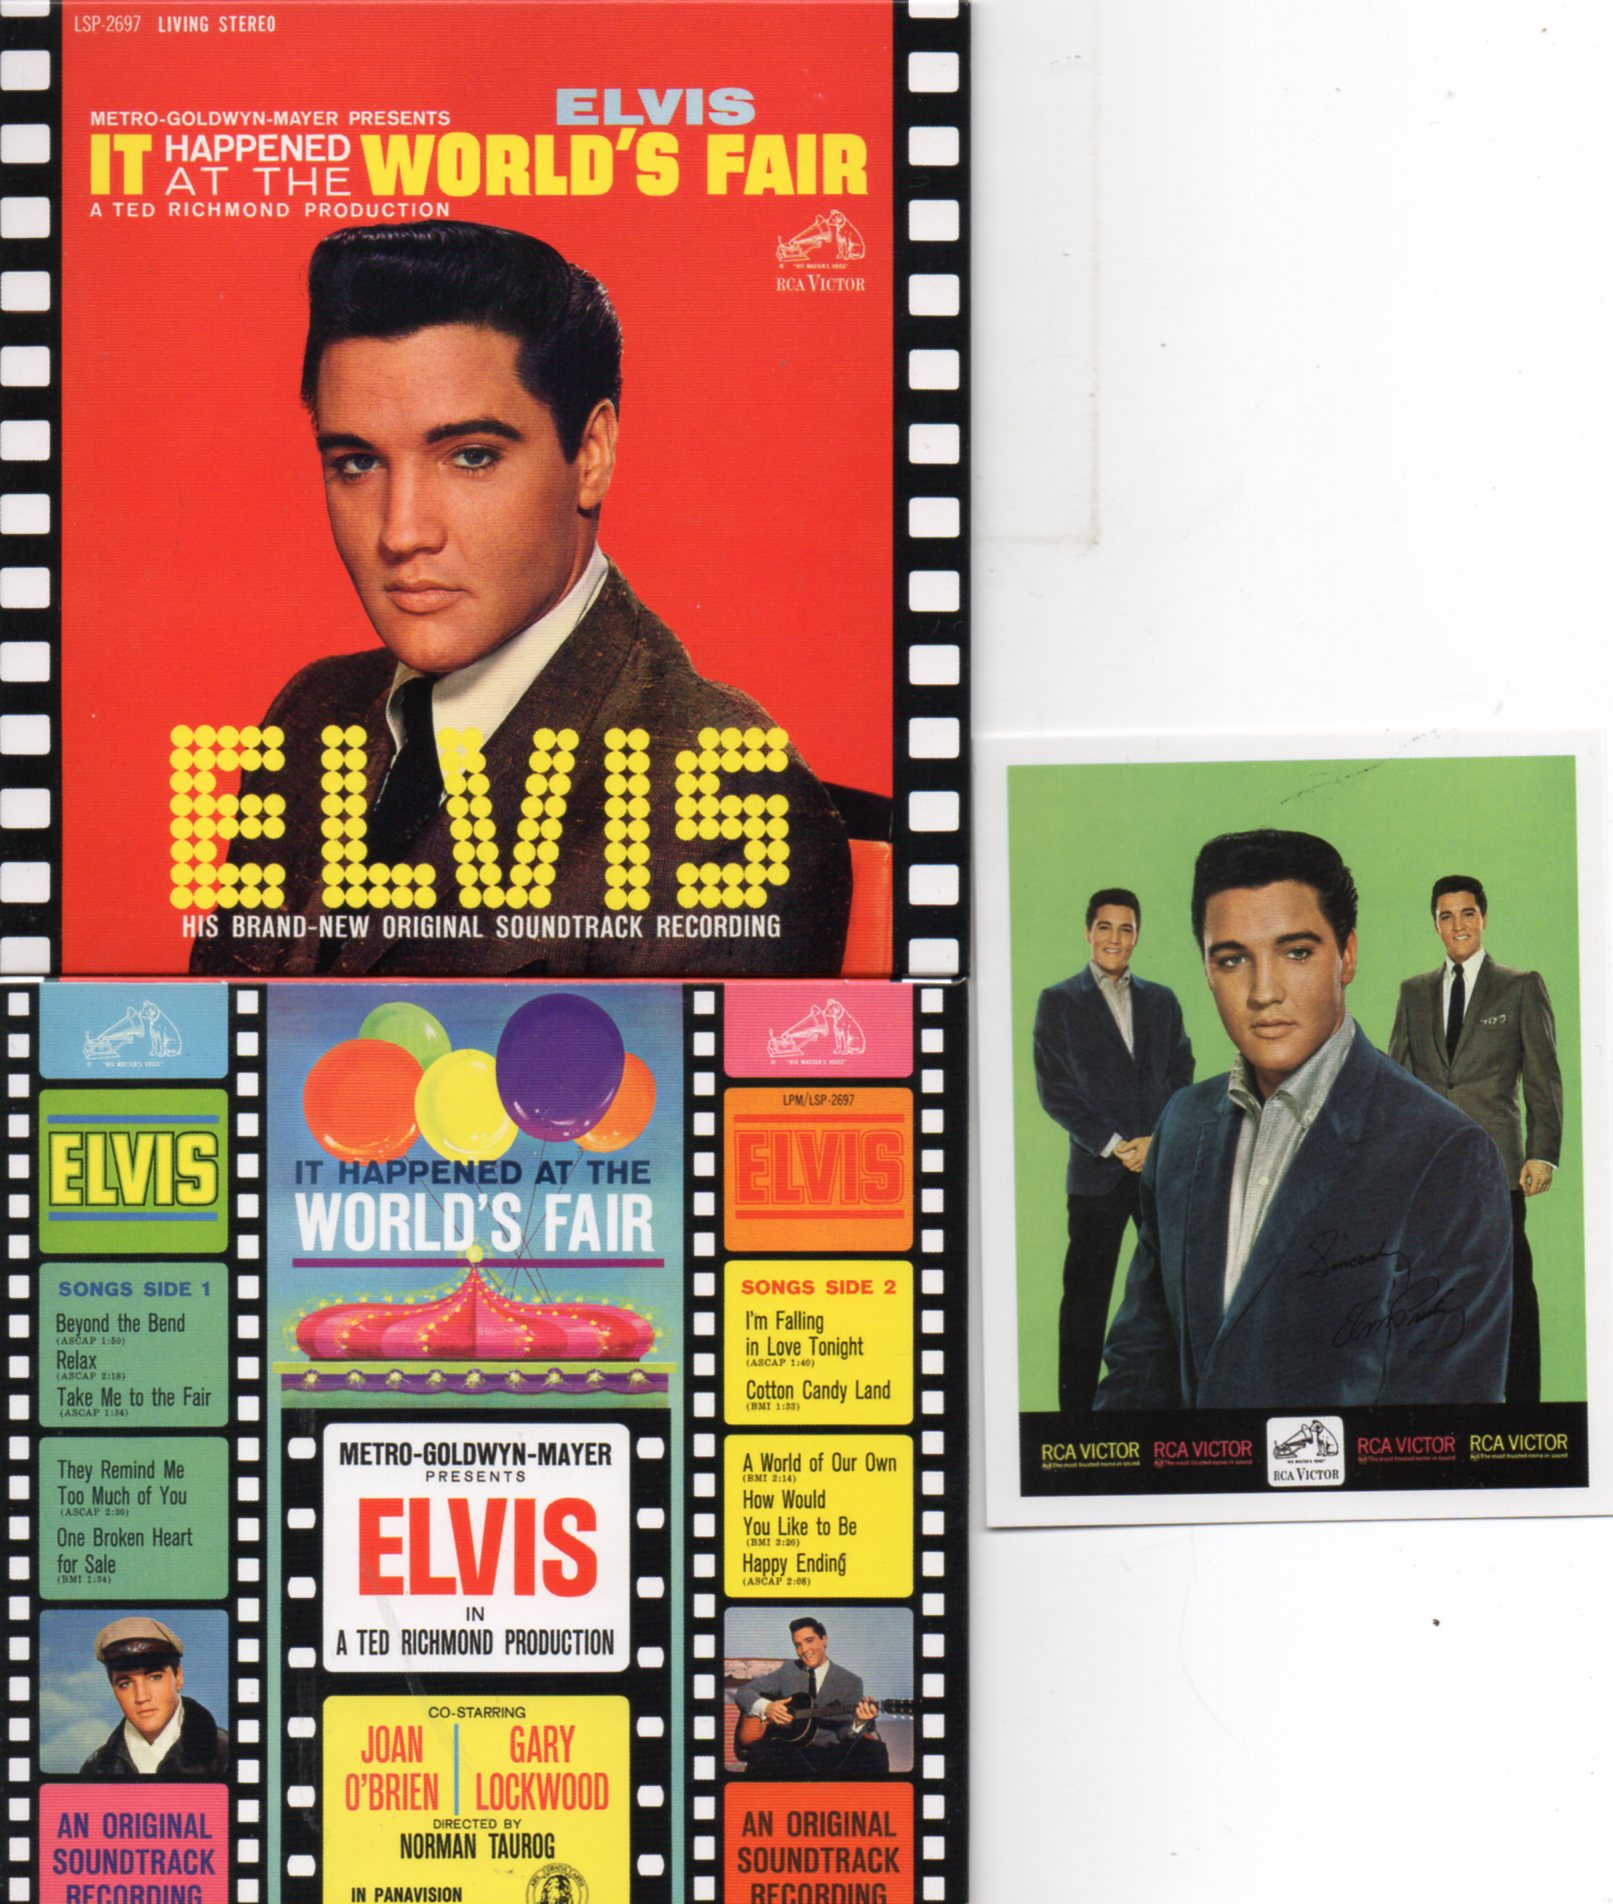 Elvis PRESLEY - It Happened At The World's Fair (1963 - Mini Lp Replica - 10-track Card Sleeve Including Card Replic